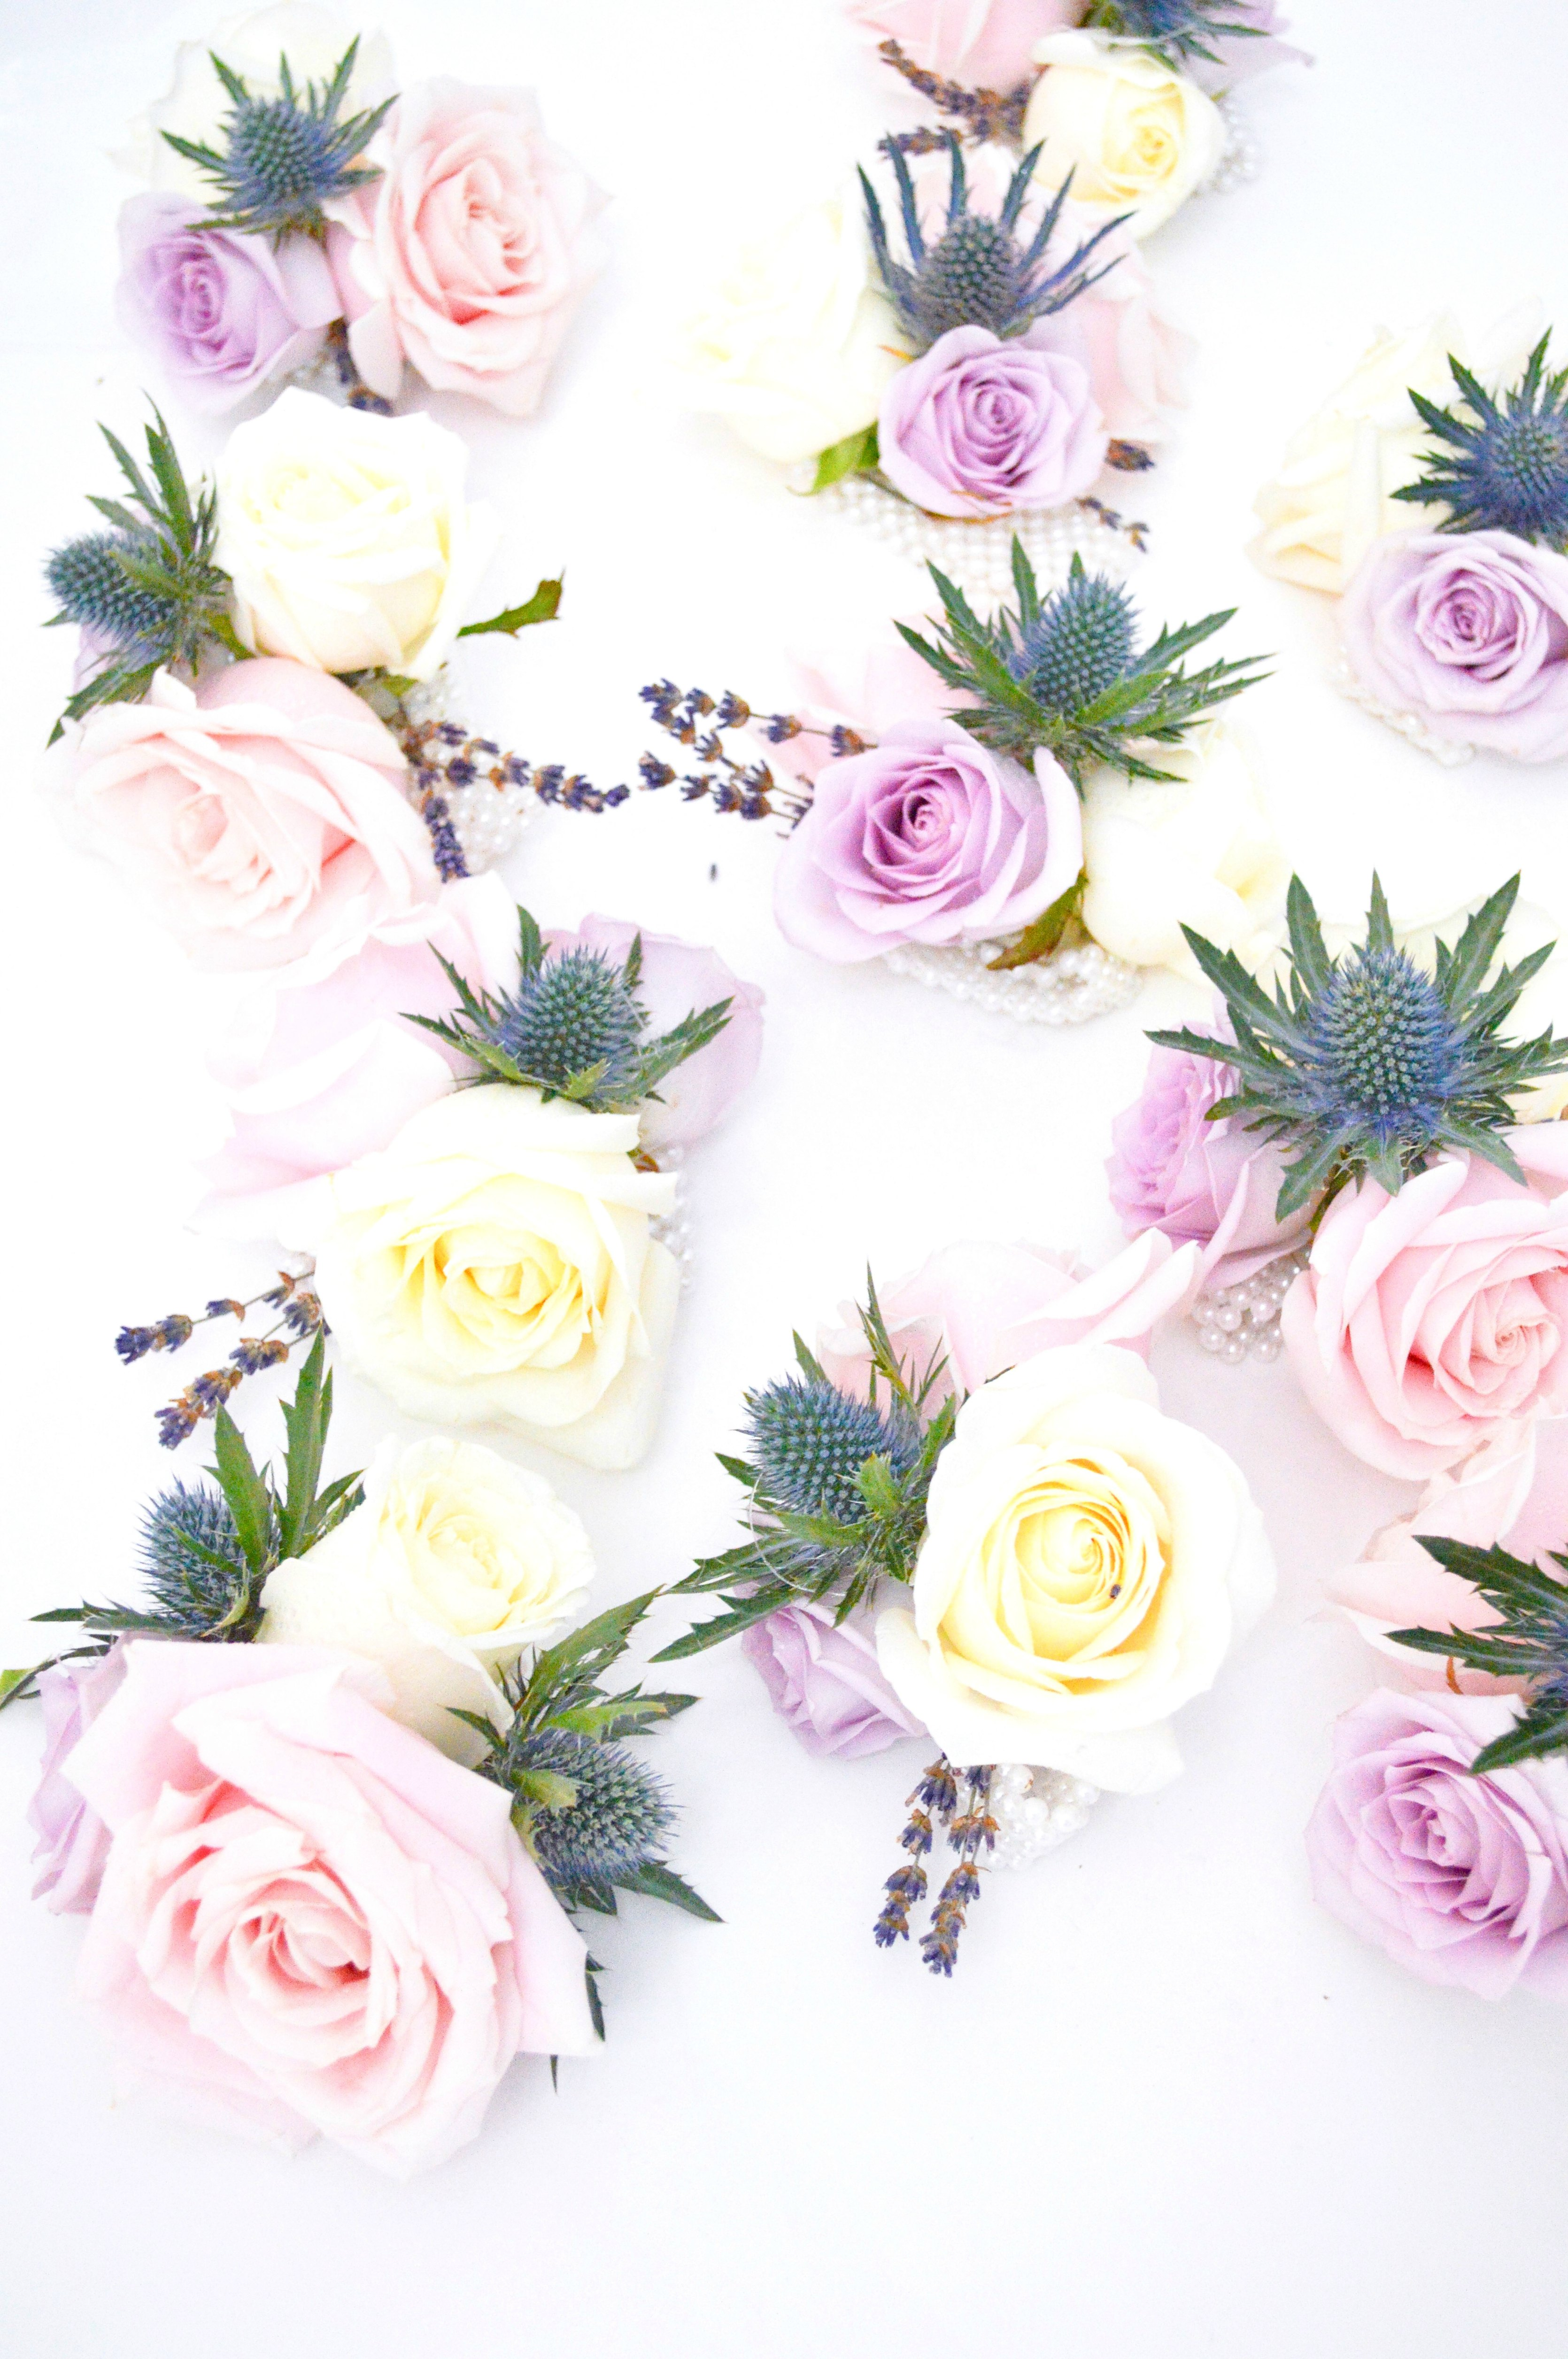 Natural garden rustic style spring pastel pink blue lilac corsages Cherie Kelly wedding flowers London